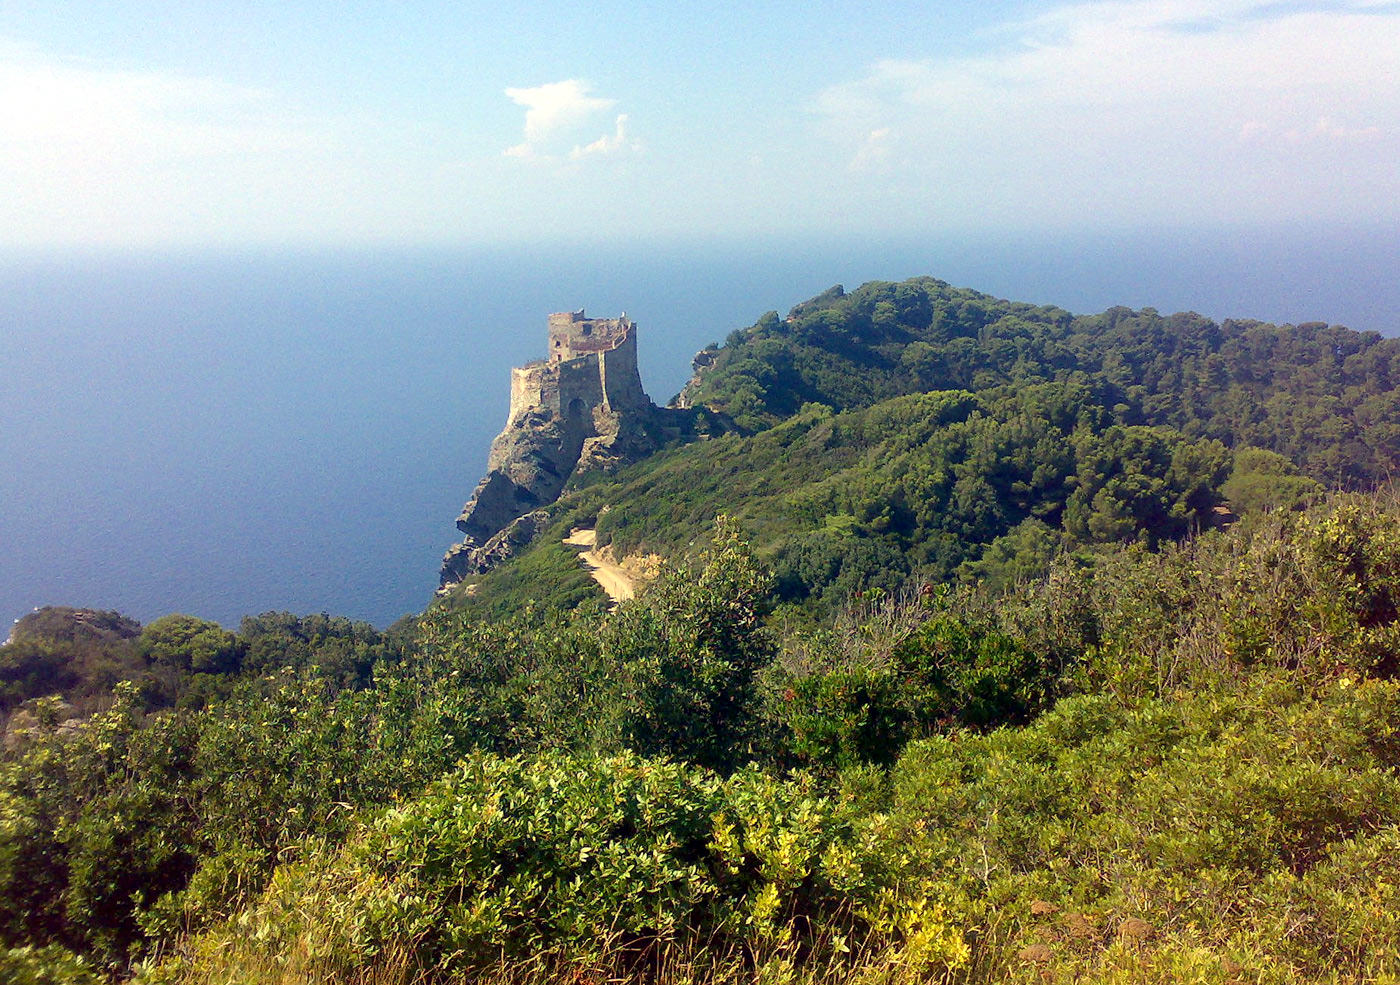 doing-hard-time-in-italys-last-island-prison-means-making-olive-oil